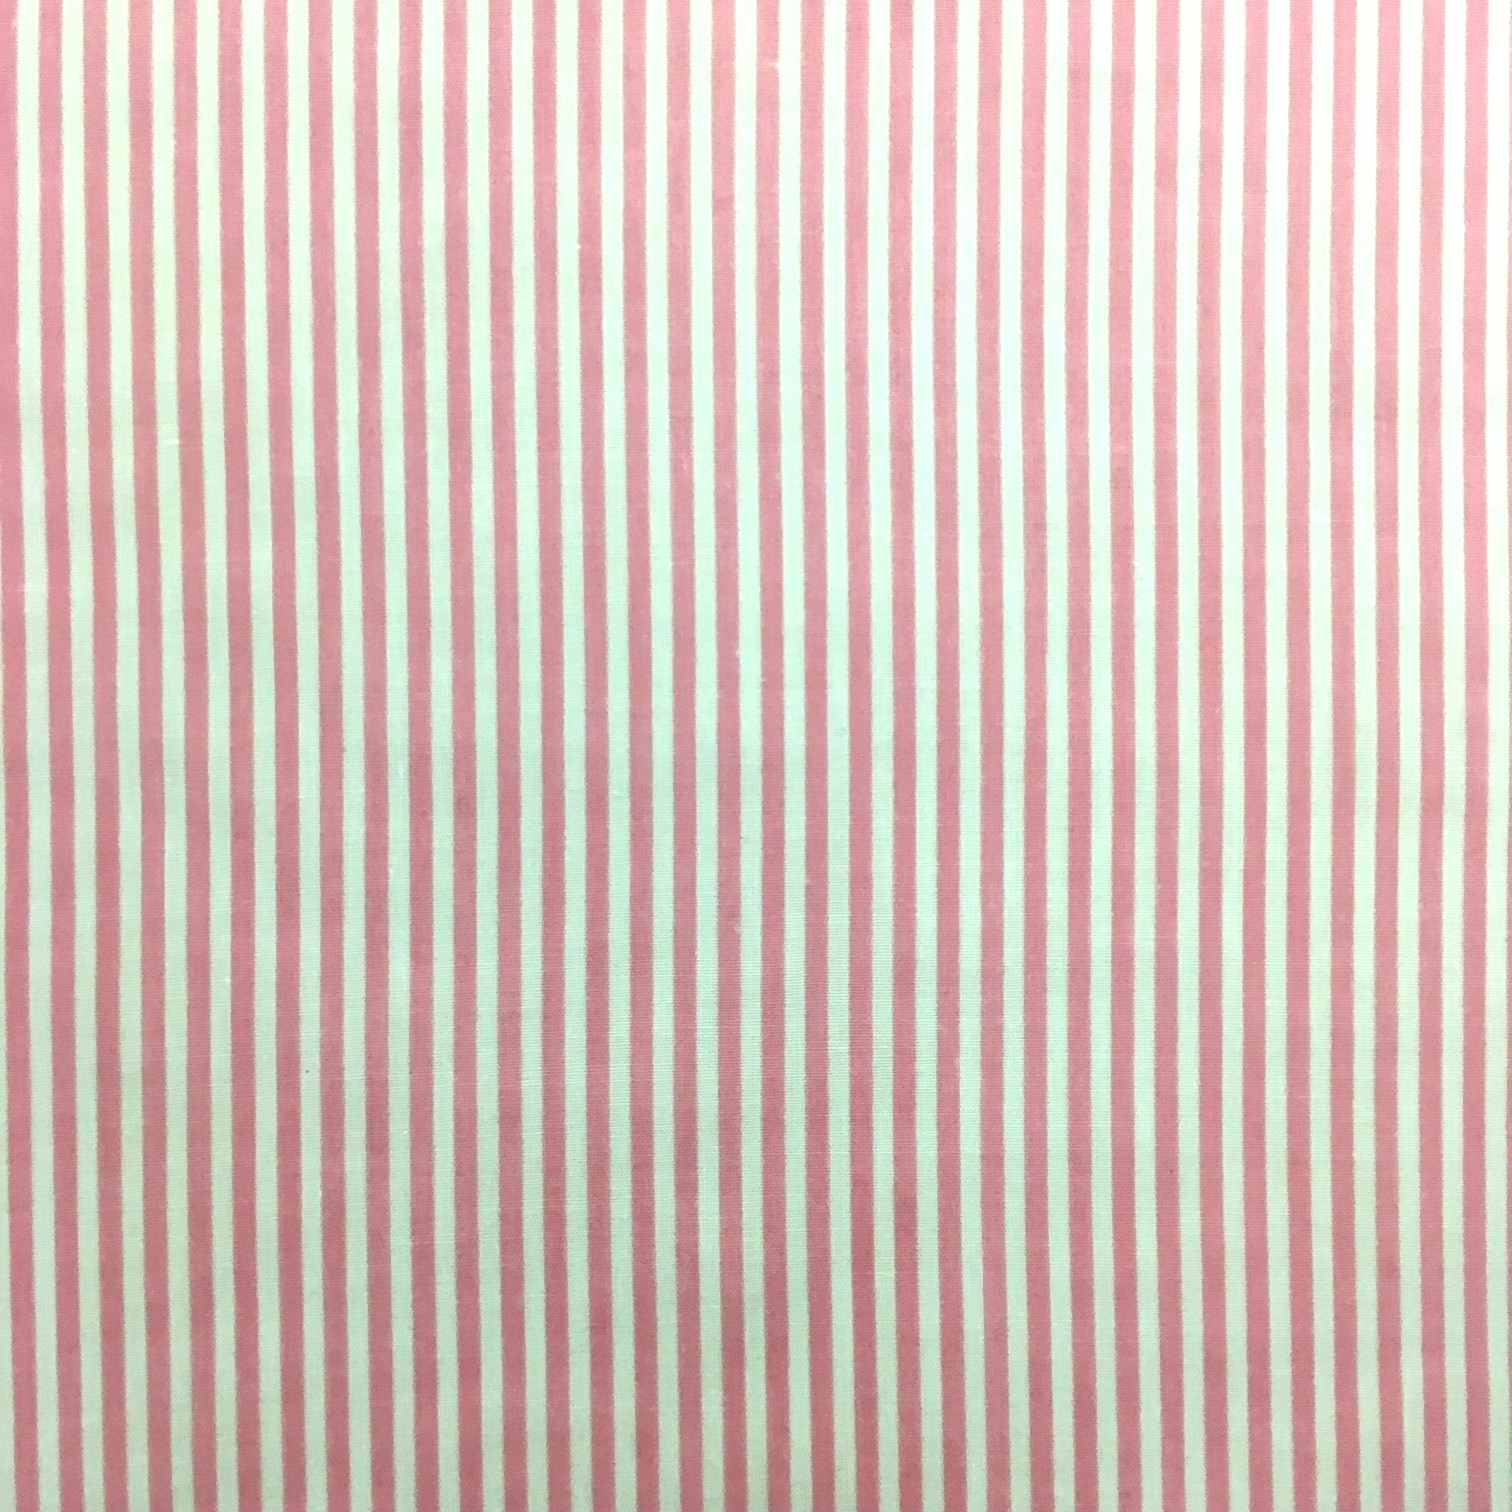 2mm Stripe PINK